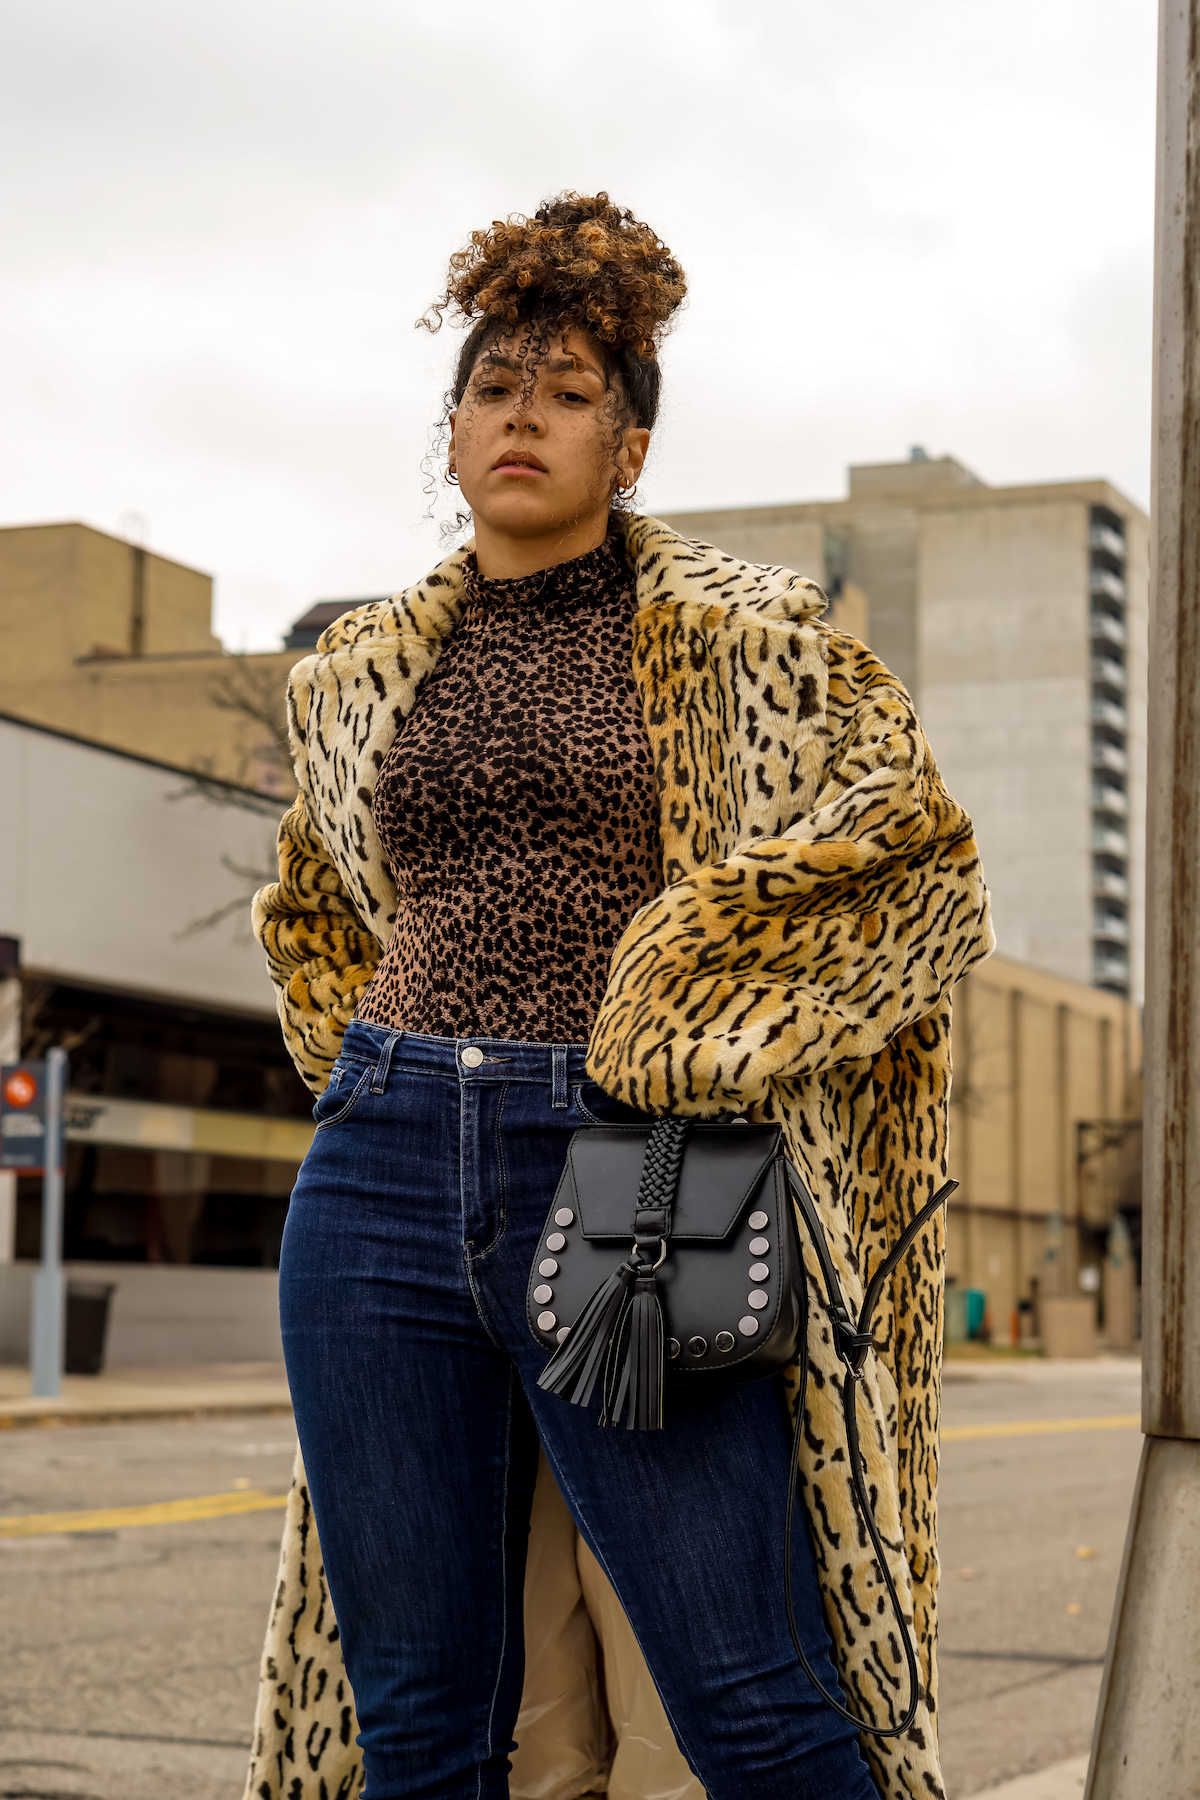 fashion blogger style outfits, winter outfits women 20s style inspiration color combos, latest fashion trends for women what to wear leopard print, winter outfits women casual fashion ideas street styles